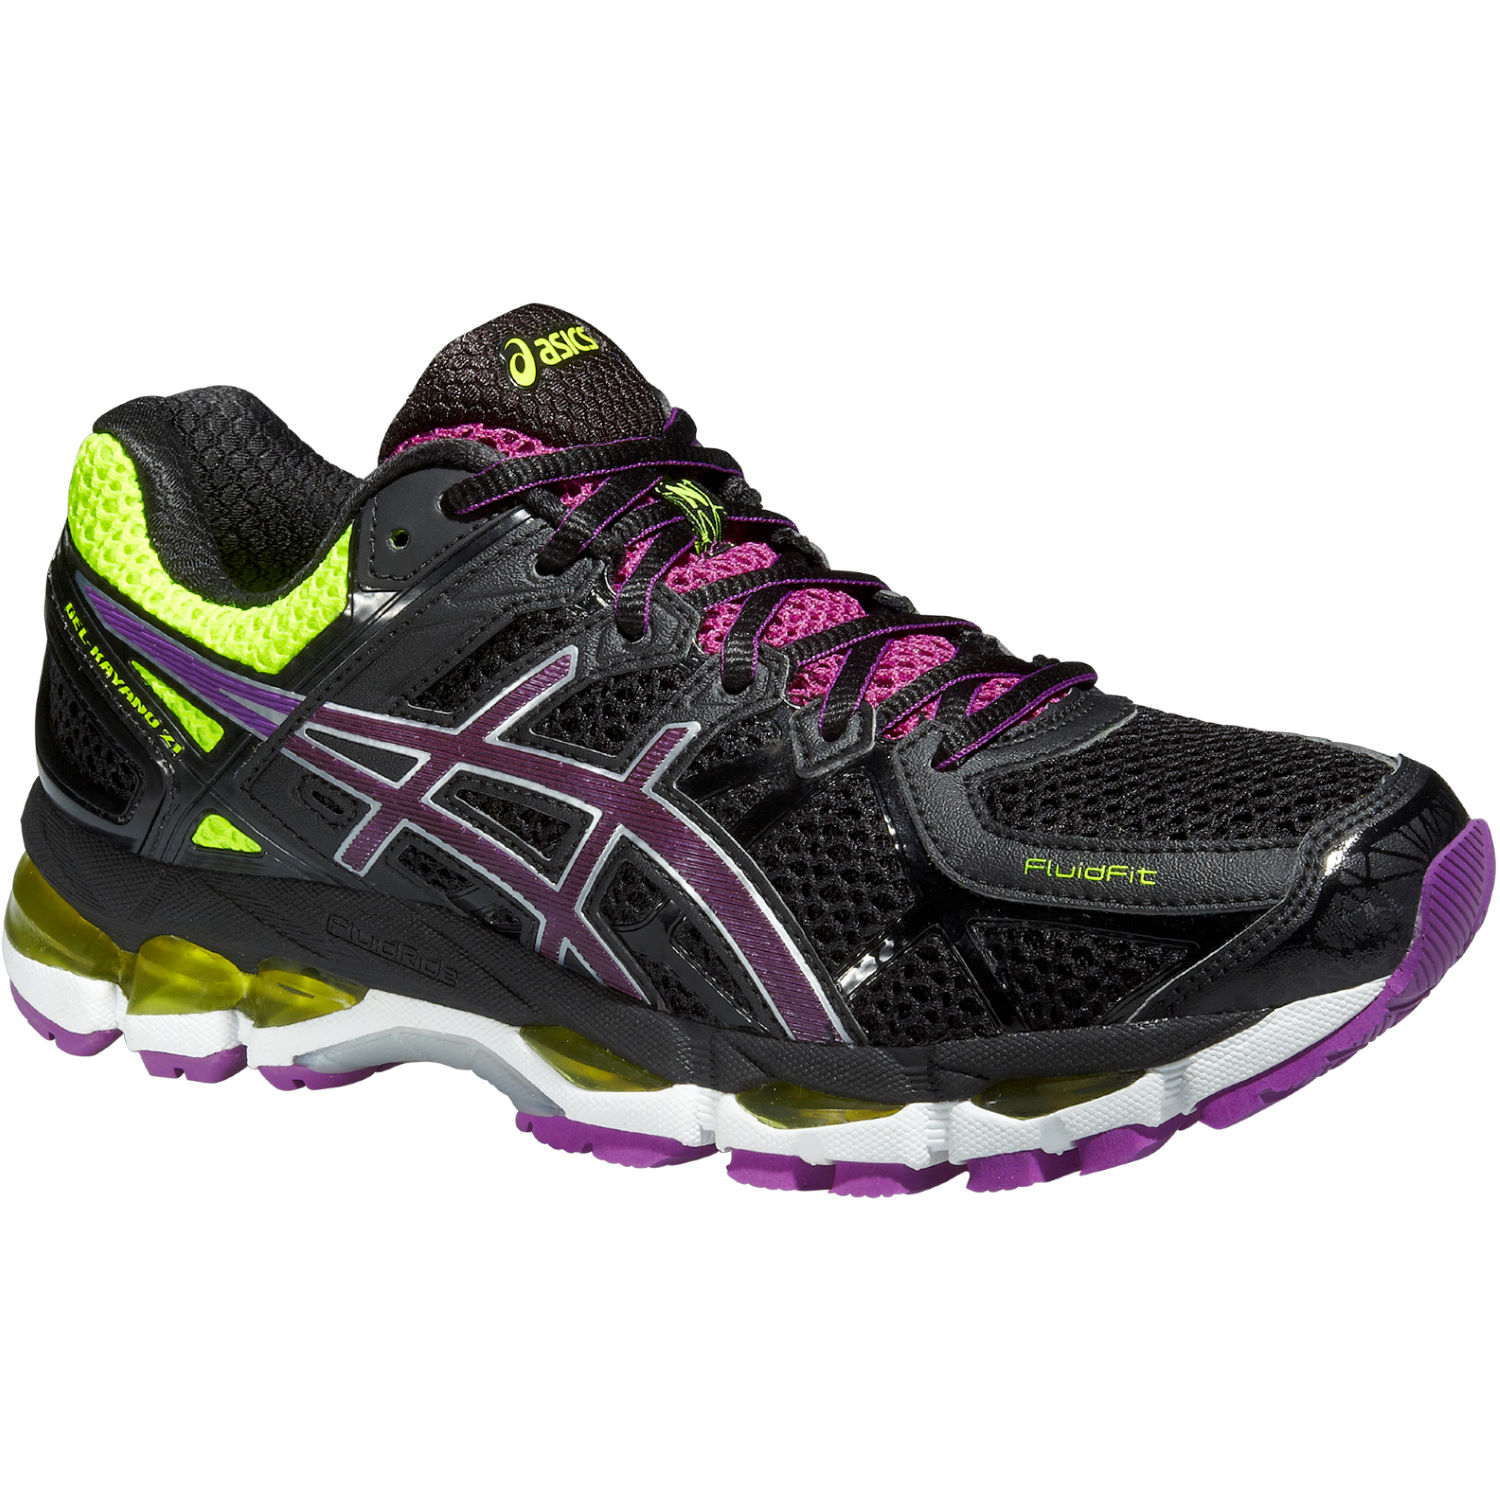 3tidmh8u outlet women 39 s asics gel kayano 21 running shoes. Black Bedroom Furniture Sets. Home Design Ideas